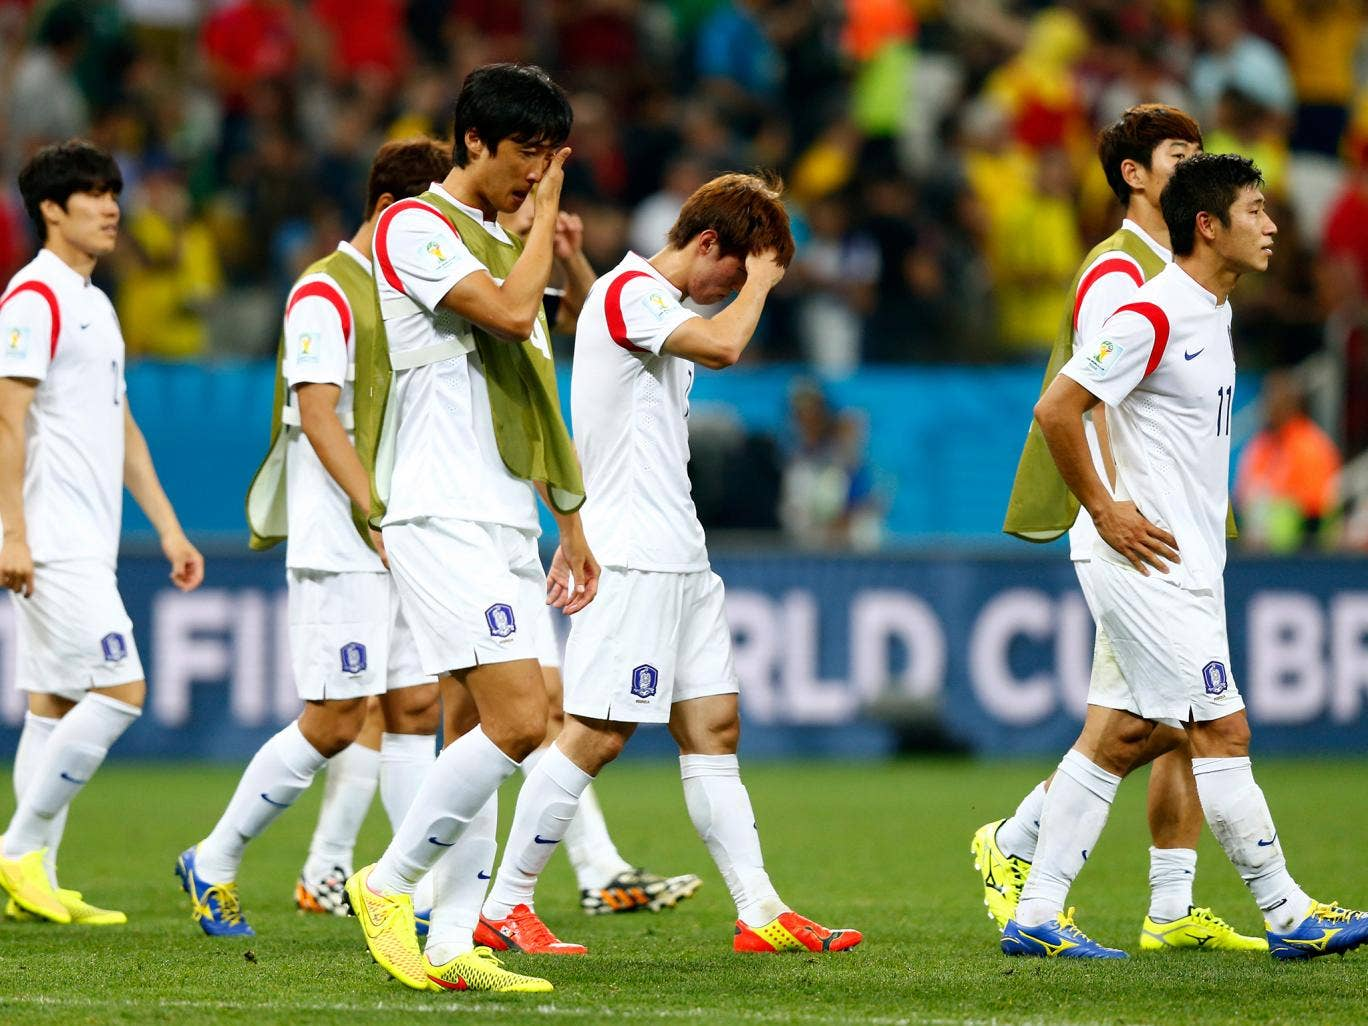 South Korea players look dejected after a 0-1 defeat to Belgium in the 2014 FIFA World Cup